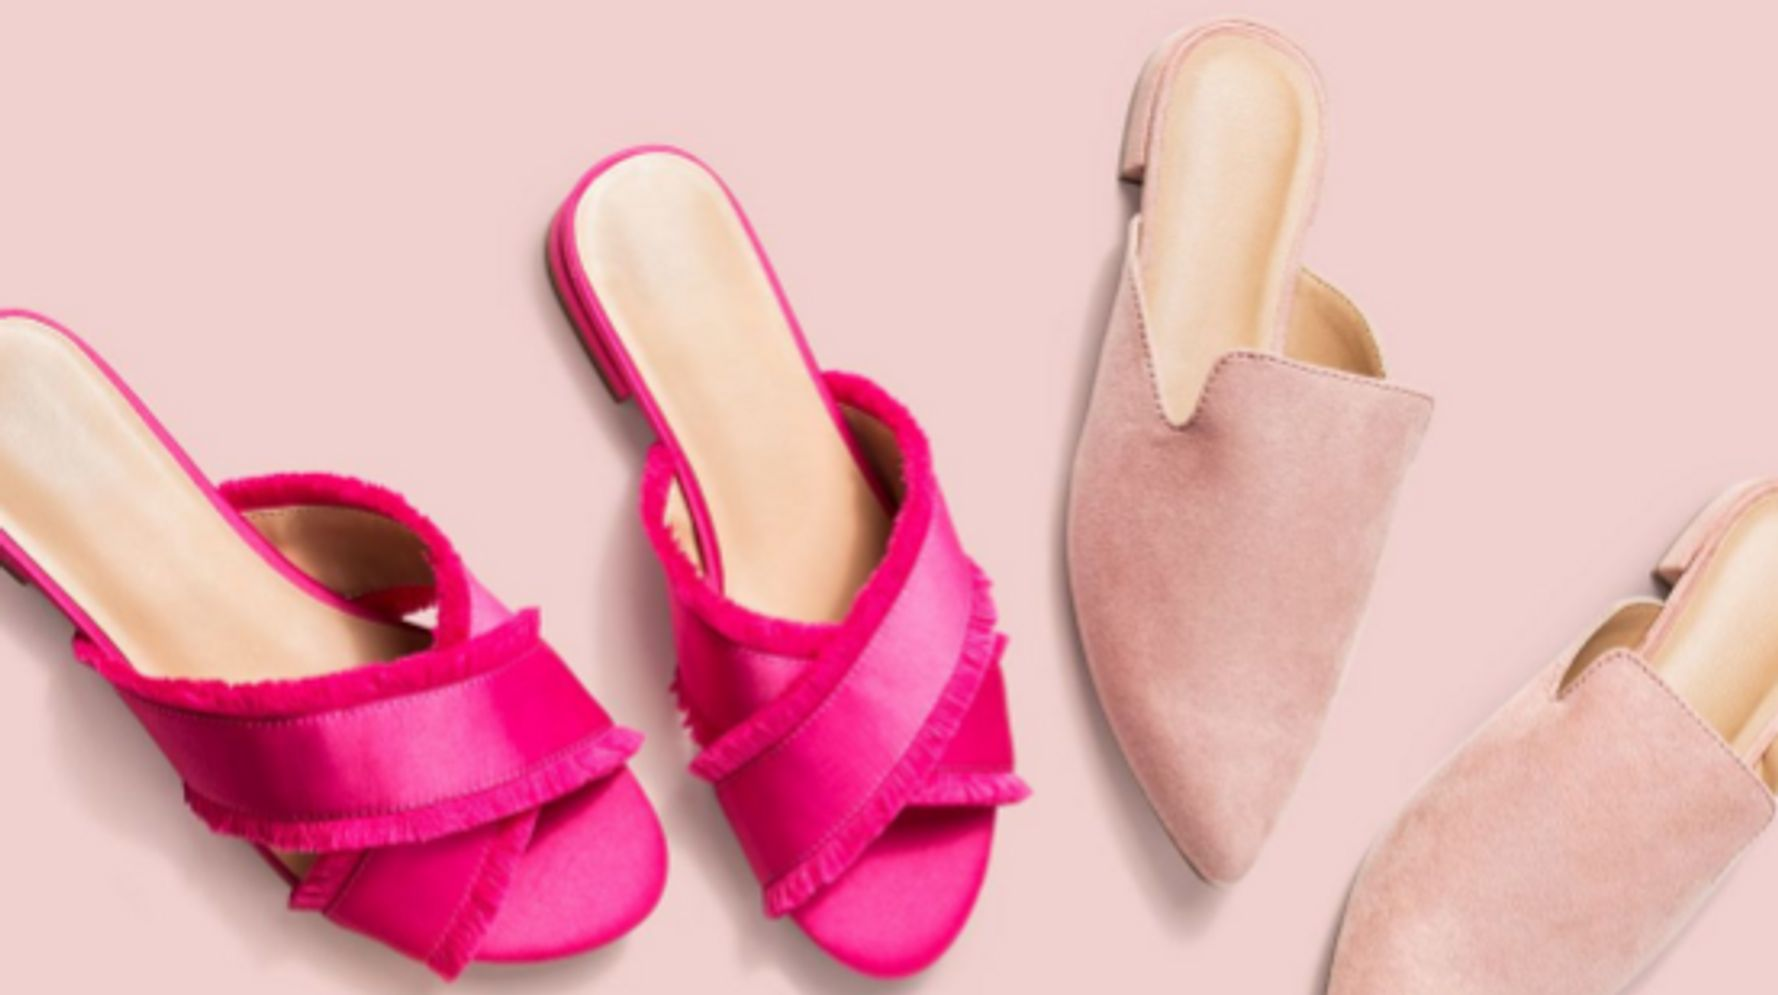 b7ce144d48e 21 Comfortable Mules For Women With Wide Feet | HuffPost Life